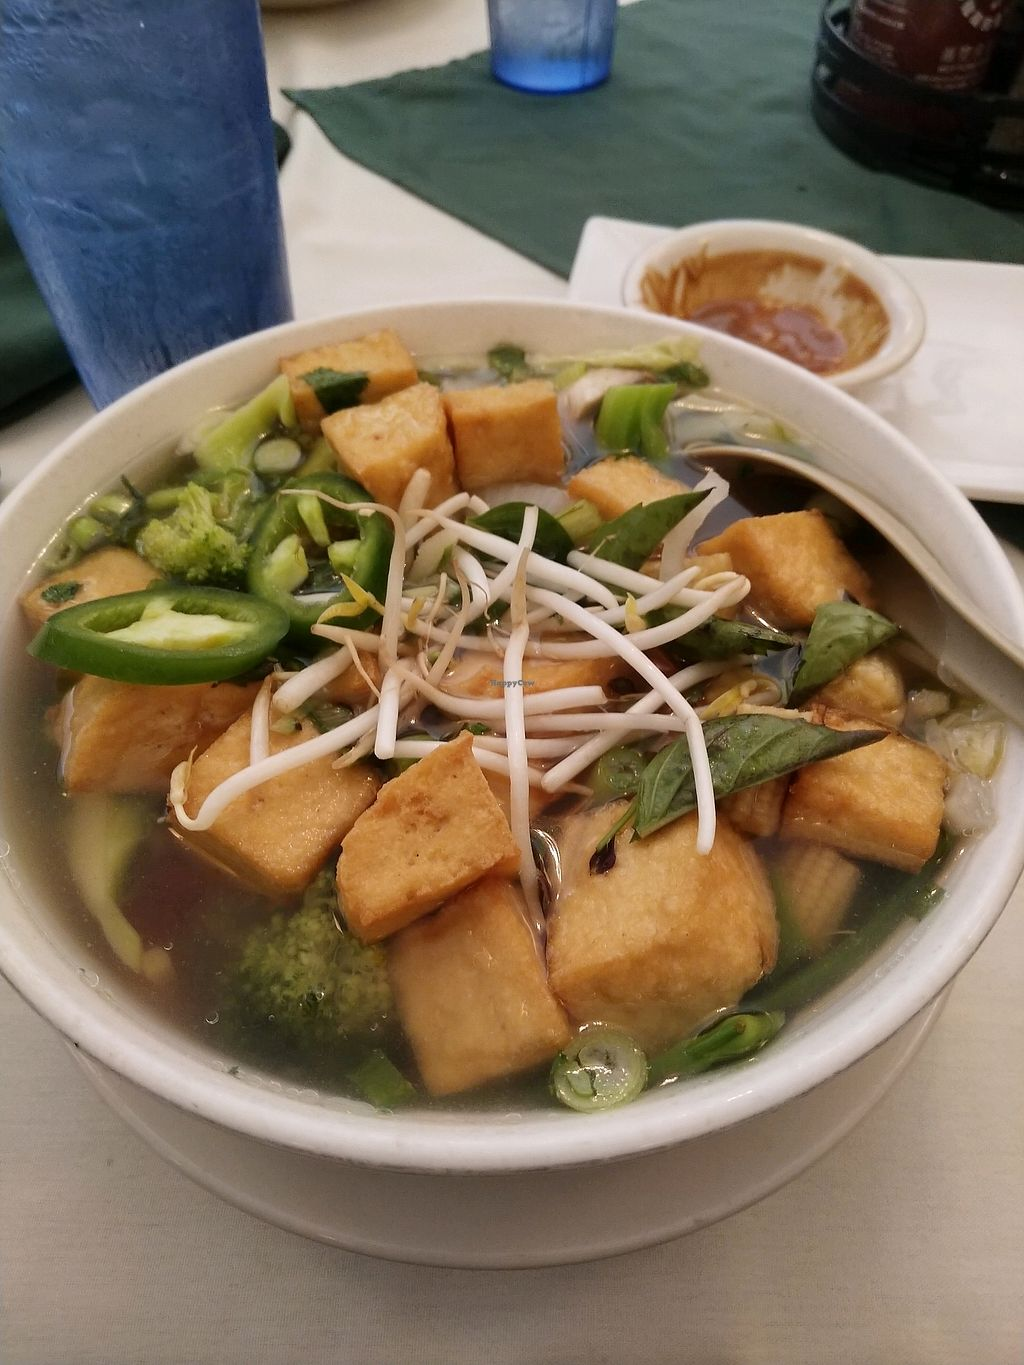 """Photo of Pho 20  by <a href=""""/members/profile/sriteja"""">sriteja</a> <br/>pho with veggie broth <br/> May 15, 2018  - <a href='/contact/abuse/image/17312/400324'>Report</a>"""